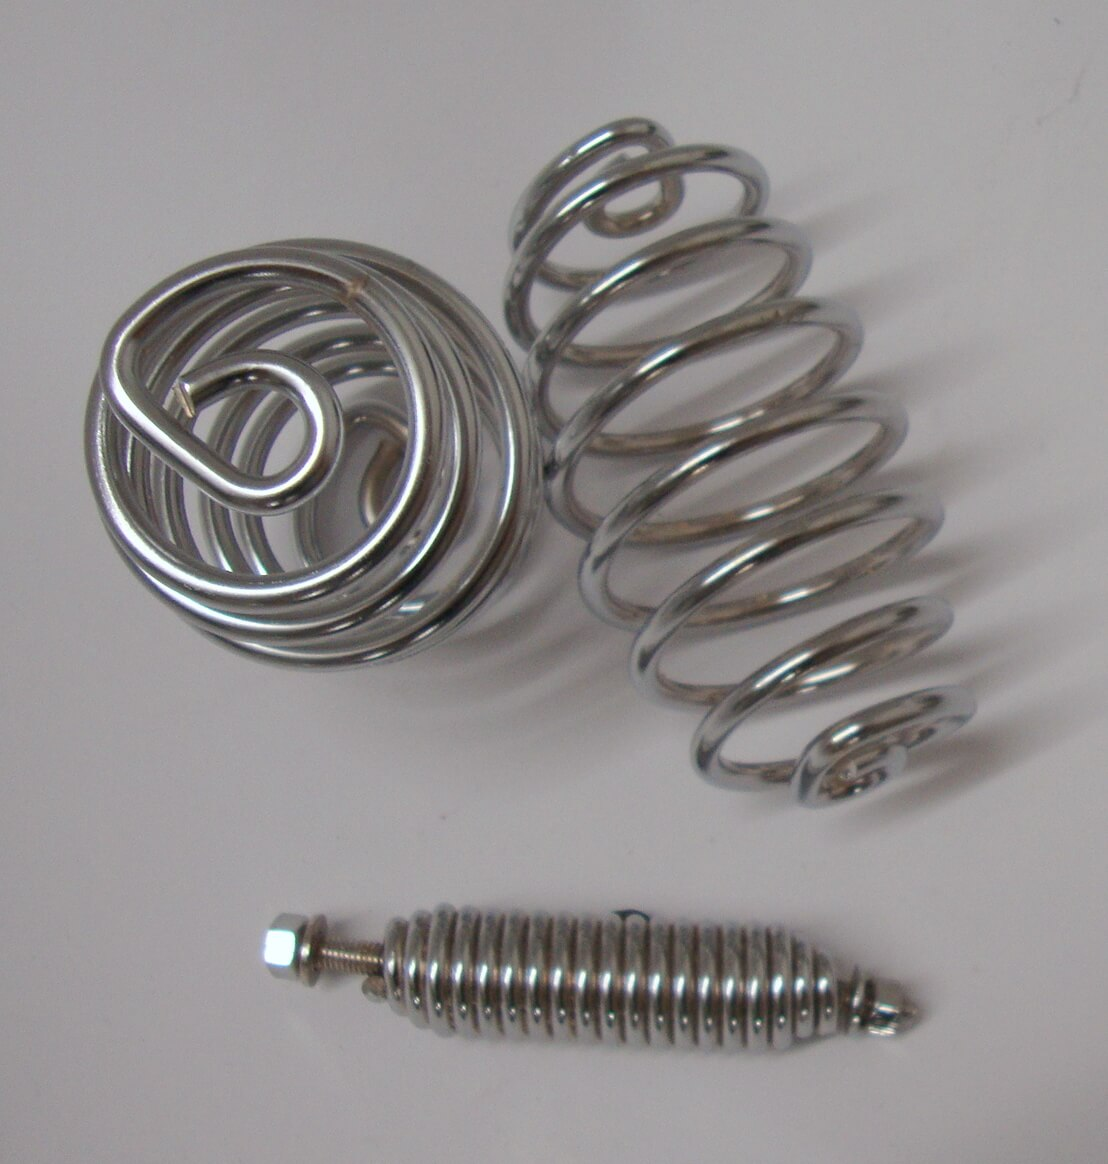 Springs kit, single saddle, chromed, Vespa 125 VM1T > VM2T - VN2T / Ape AB1T > AB4T